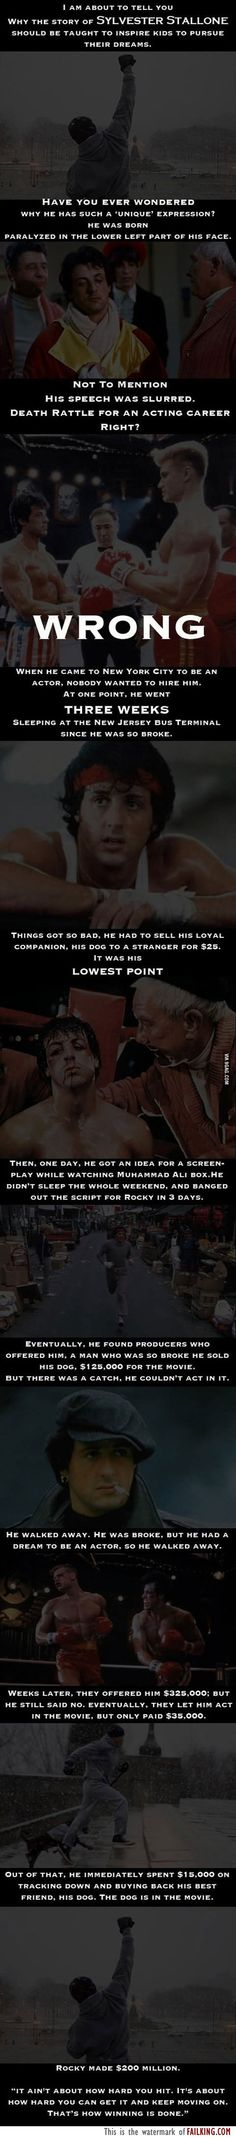 Wow this is why this movie is my absolute favorite. Even his real life story can offer you a lesson in perseverance.